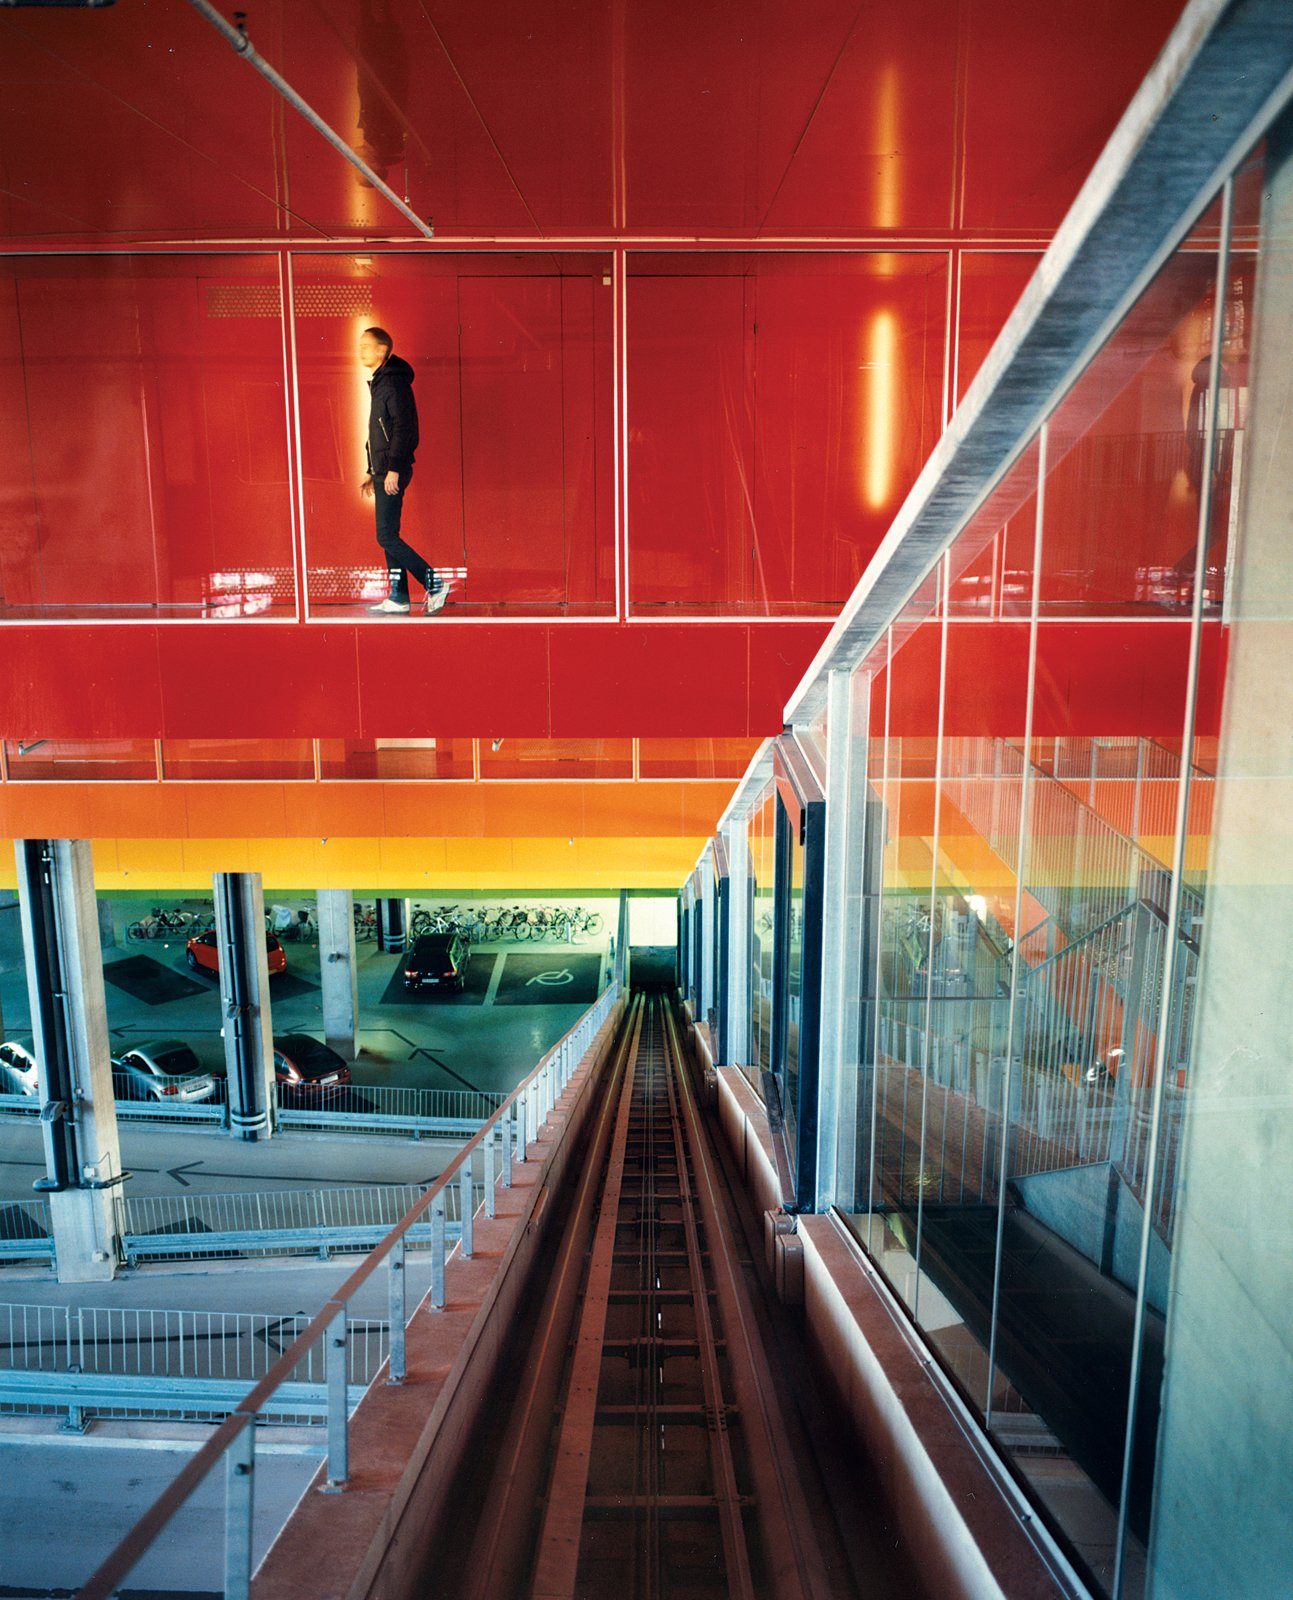 """The halls connecting the garage to the residences are covered in brightly painted aluminum treatment associated with cars, not buildings. The colors move, symbolically, from earth to sky: green, yellow, orange, dark orange, hot pink, purple, bright blue. """"Buildings are never brightly colored,"""" says Ingels, explaining the thinking behind this stepladder rainbow, """"but cars often are."""" Mountain Dwellings Urban Development in Copenhagen - Photo 9 of 20"""